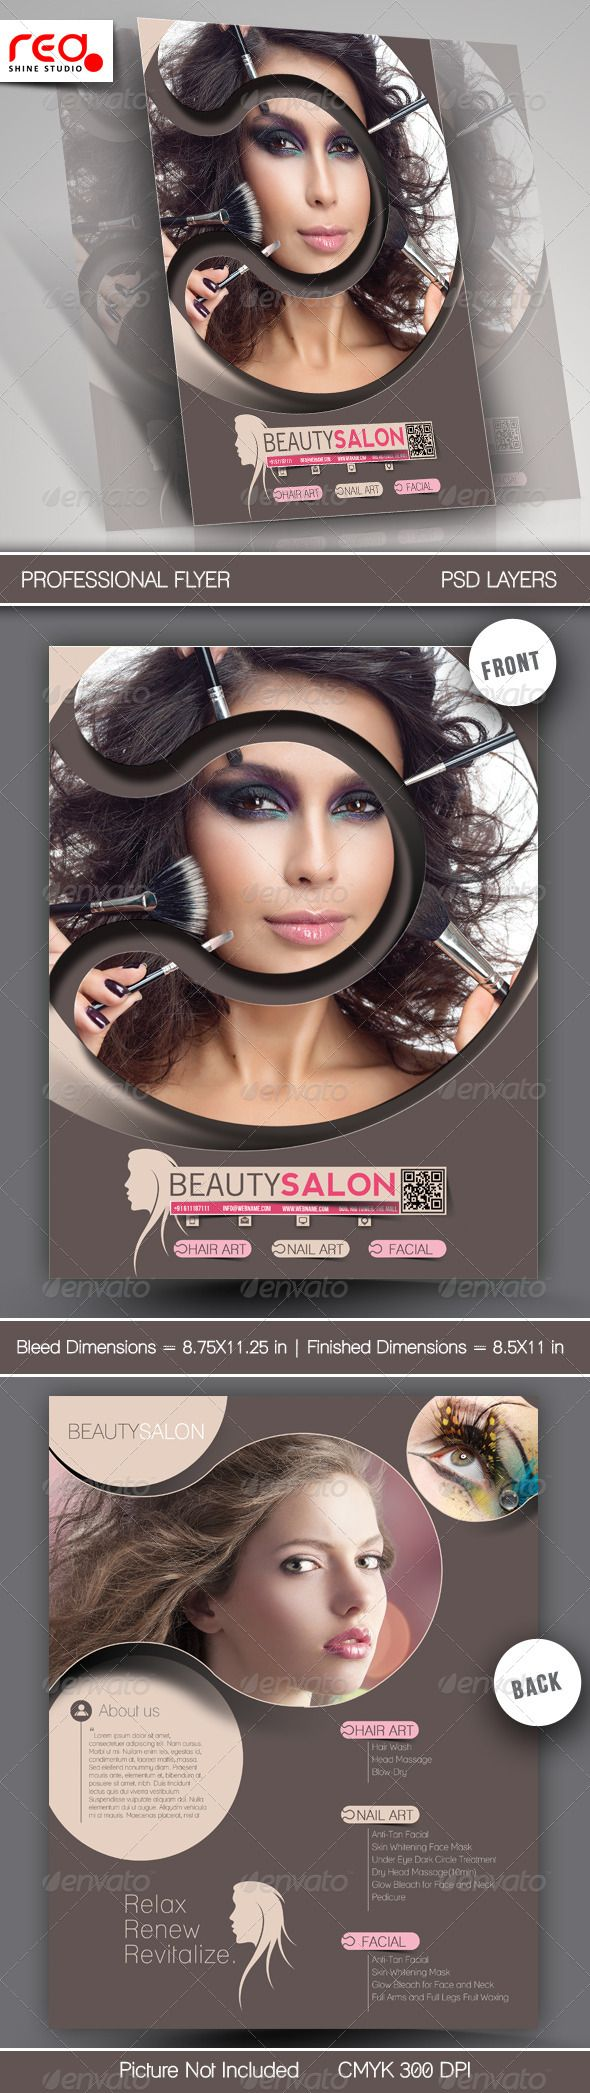 Beauty Salon Promotion Flyer Template  Salon Promotions Flyer